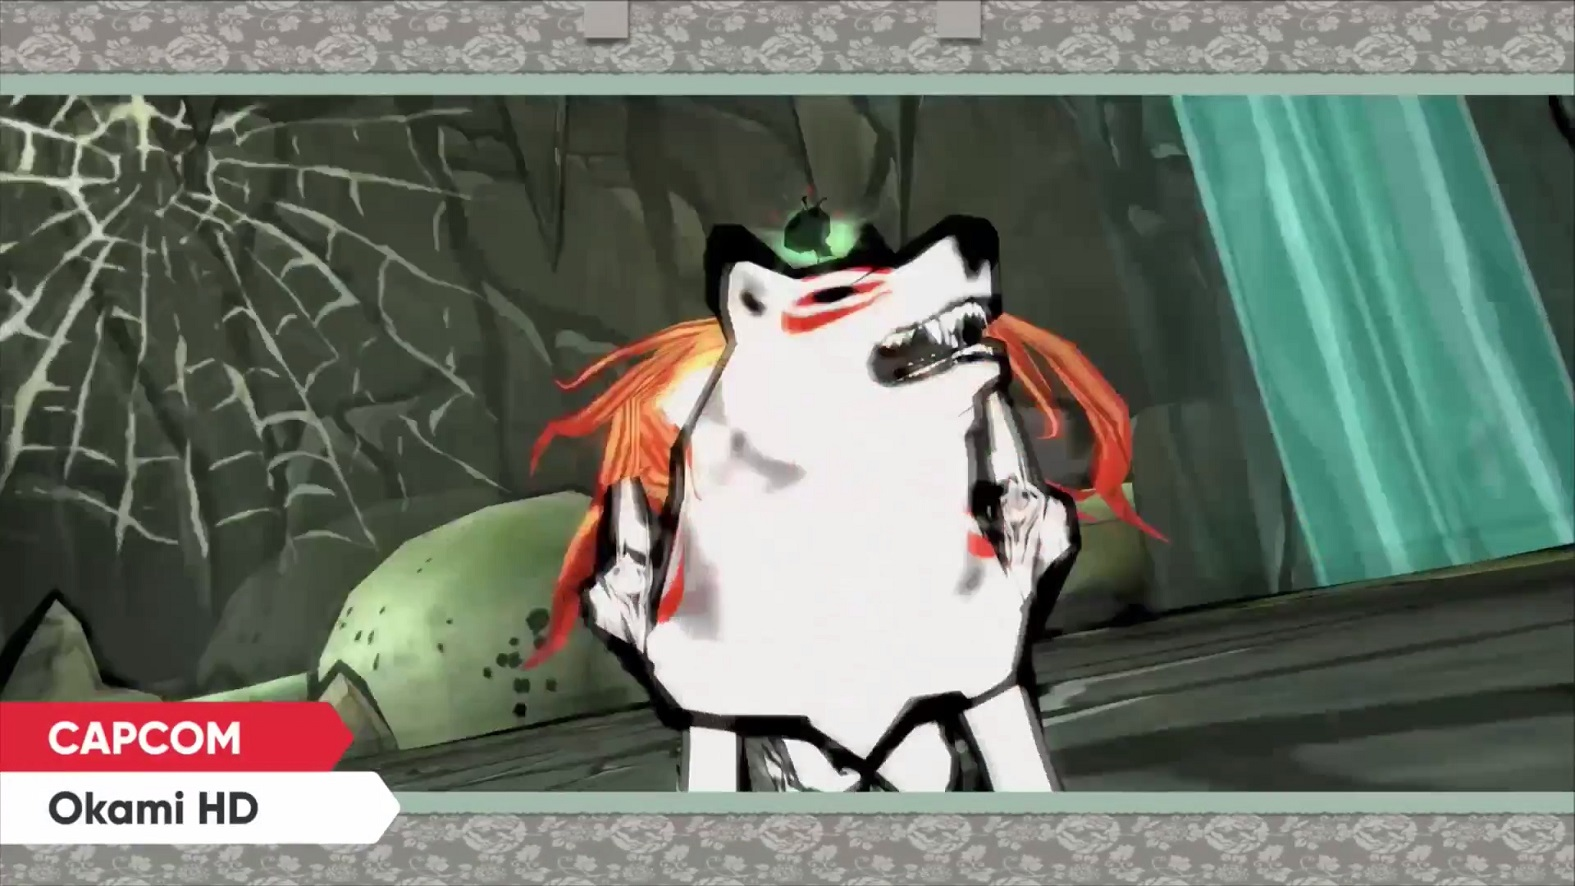 Okami Hd Arrives On Nintendo Switch This Summer Relay Animation